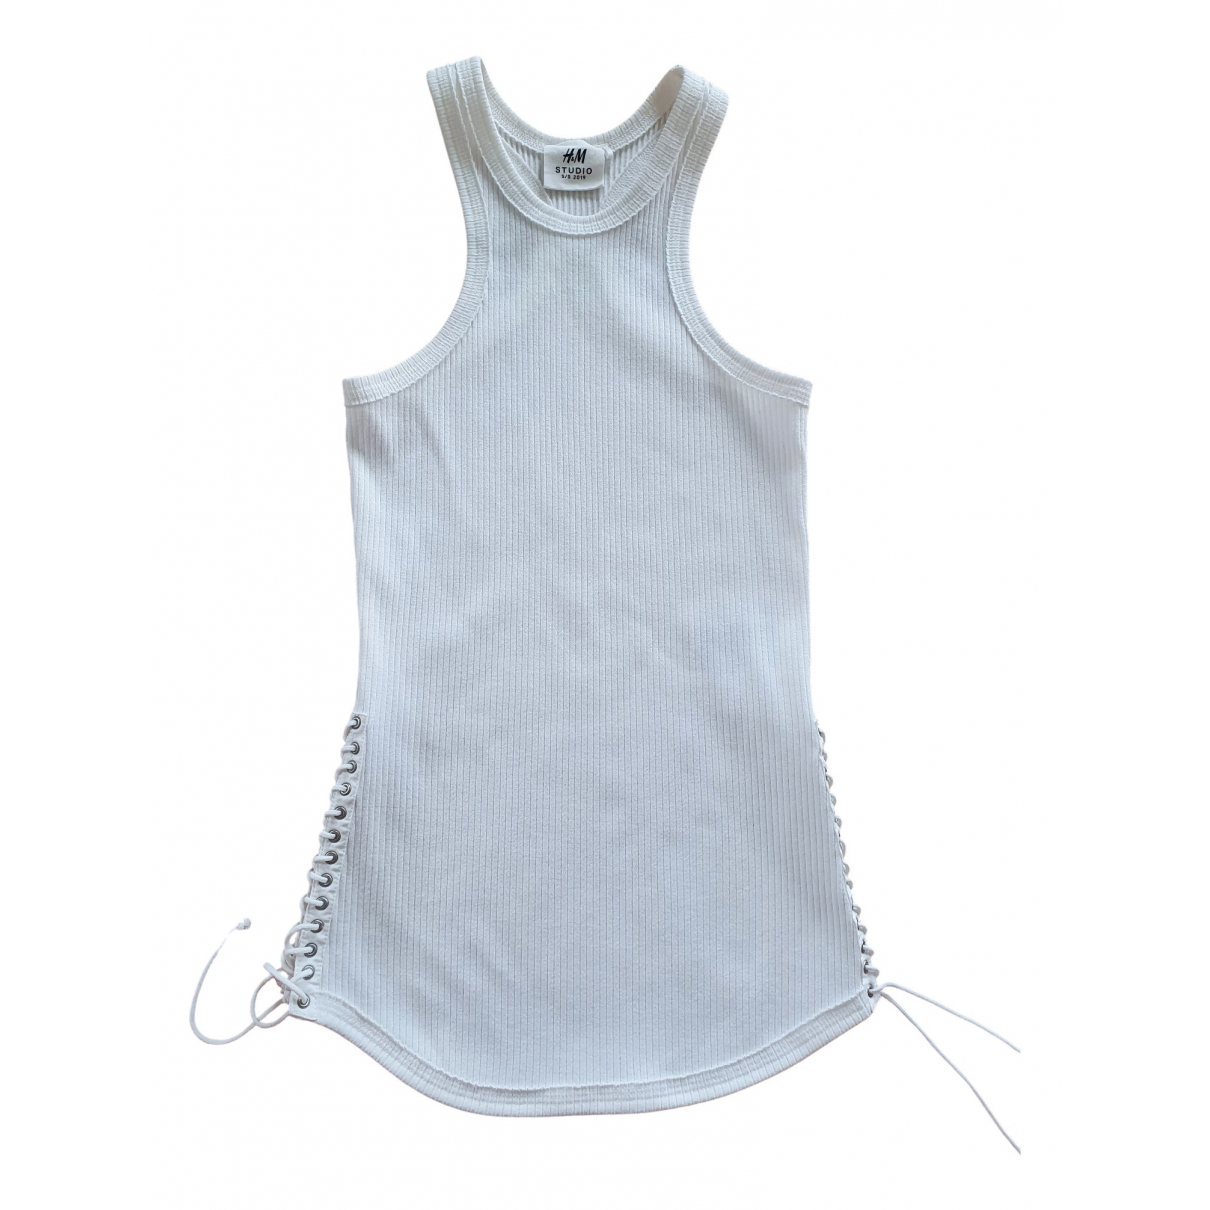 H&m Studio \N White Cotton  top for Women 34 FR